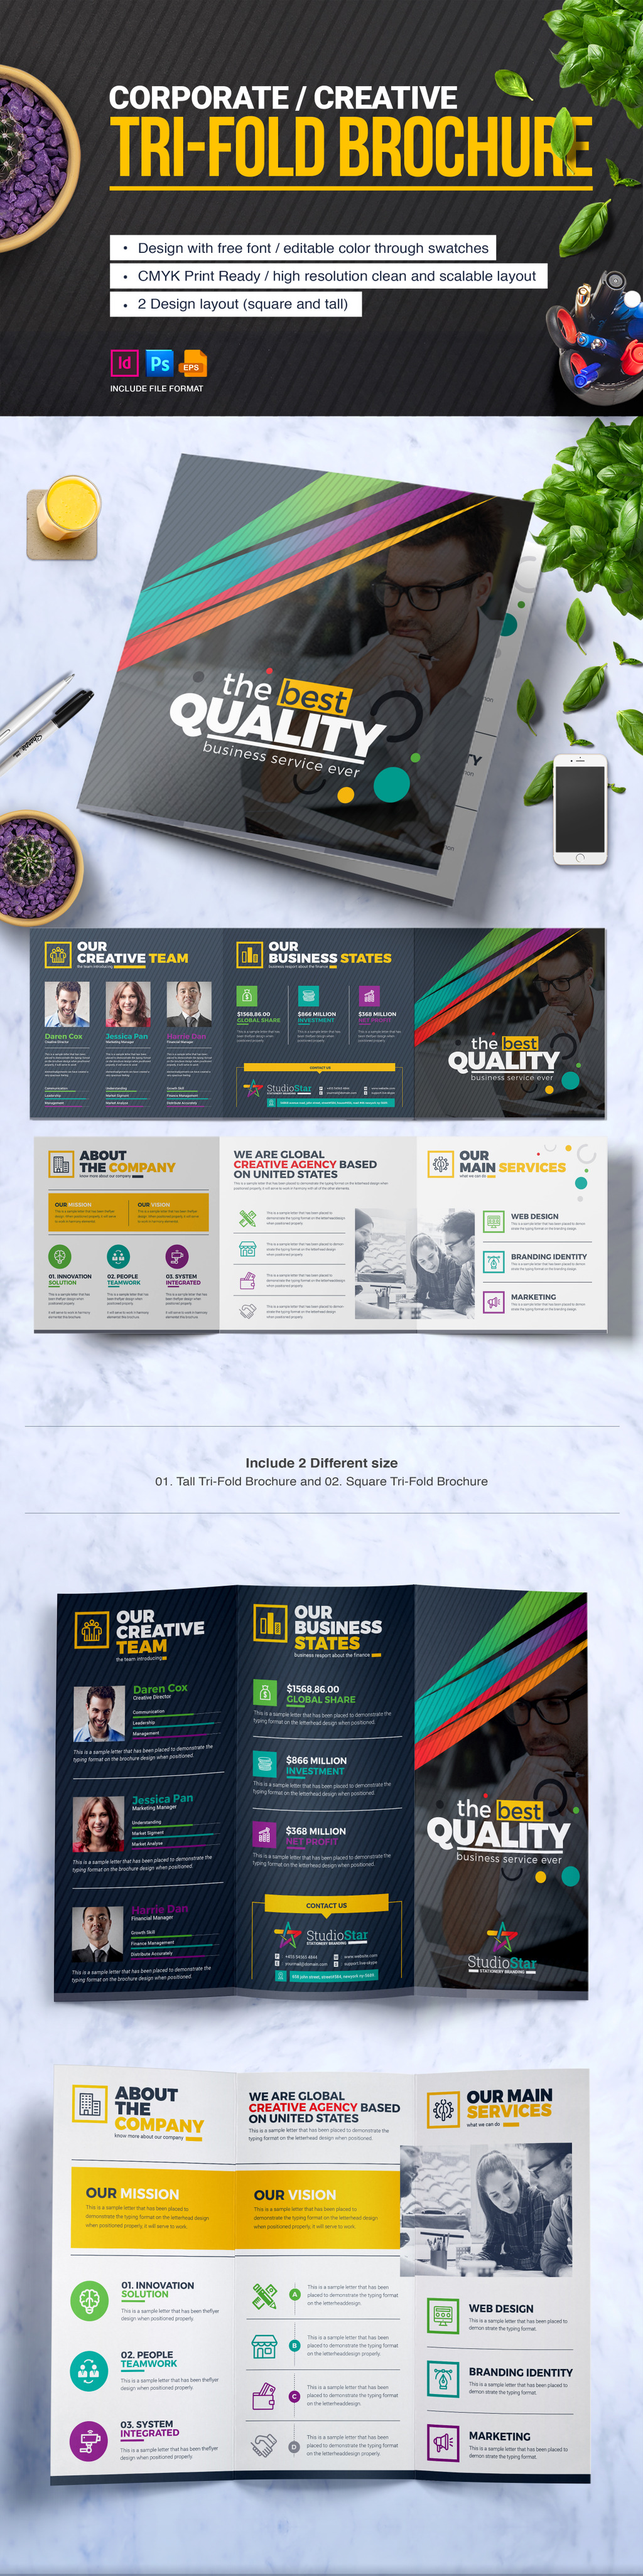 TriFold Brochure Design Template  Square And Tall Version